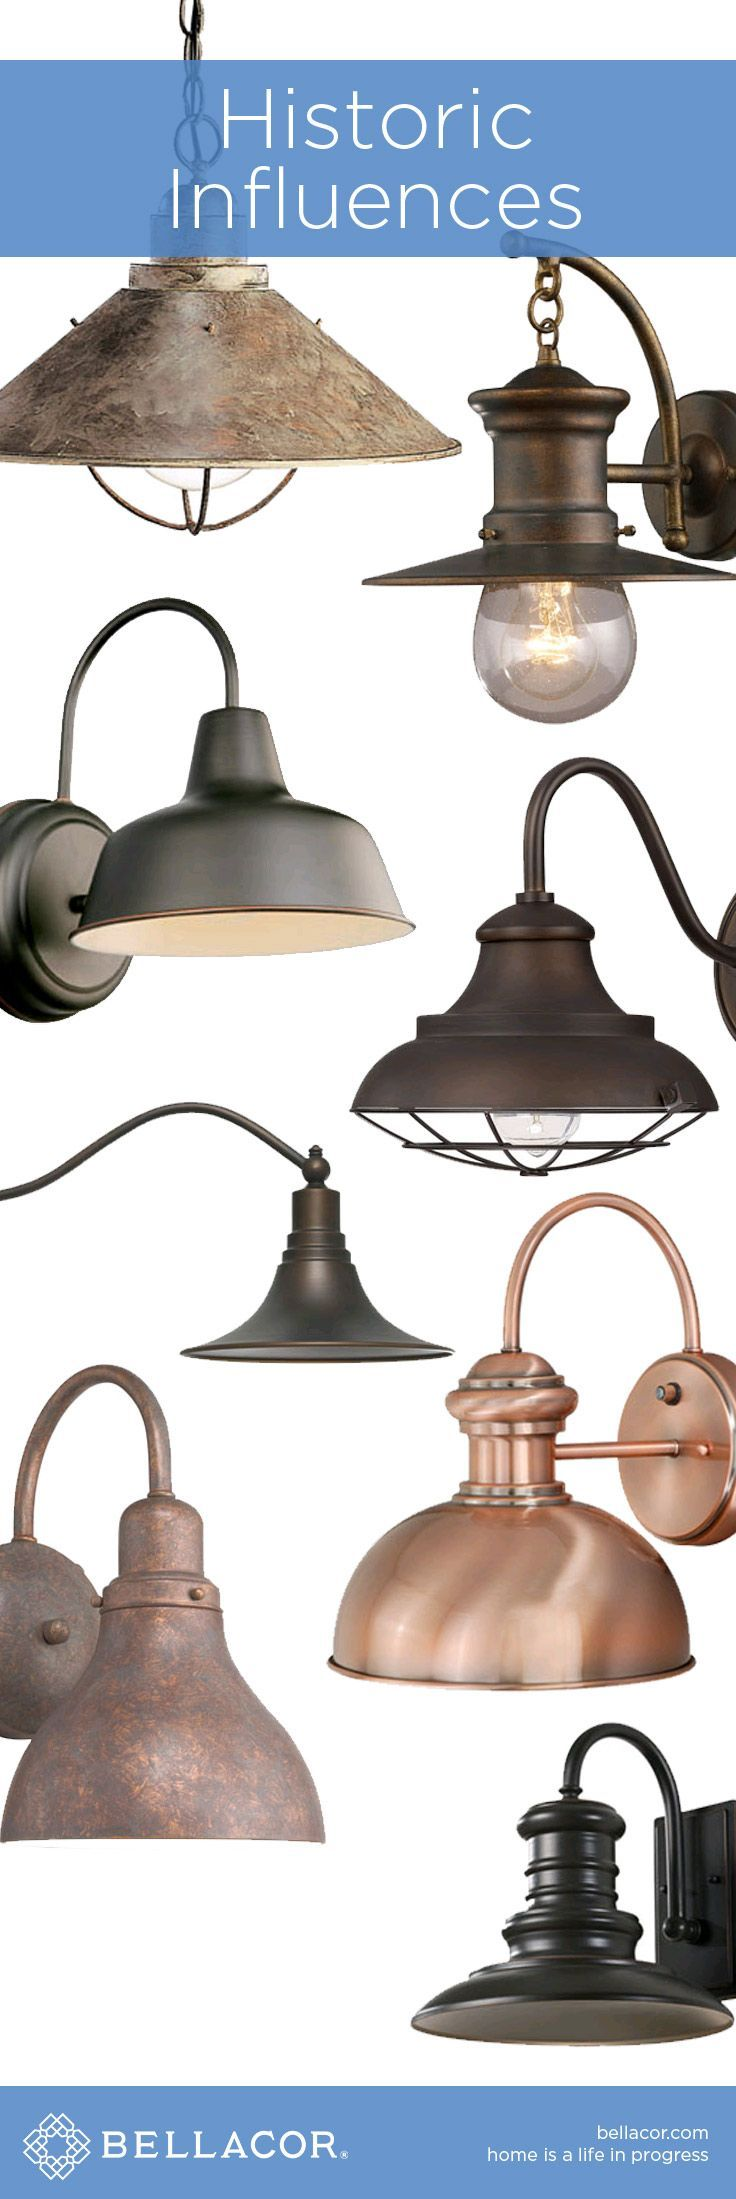 Historic Influences On Lighting Labor Junction Home Improvement House Projects